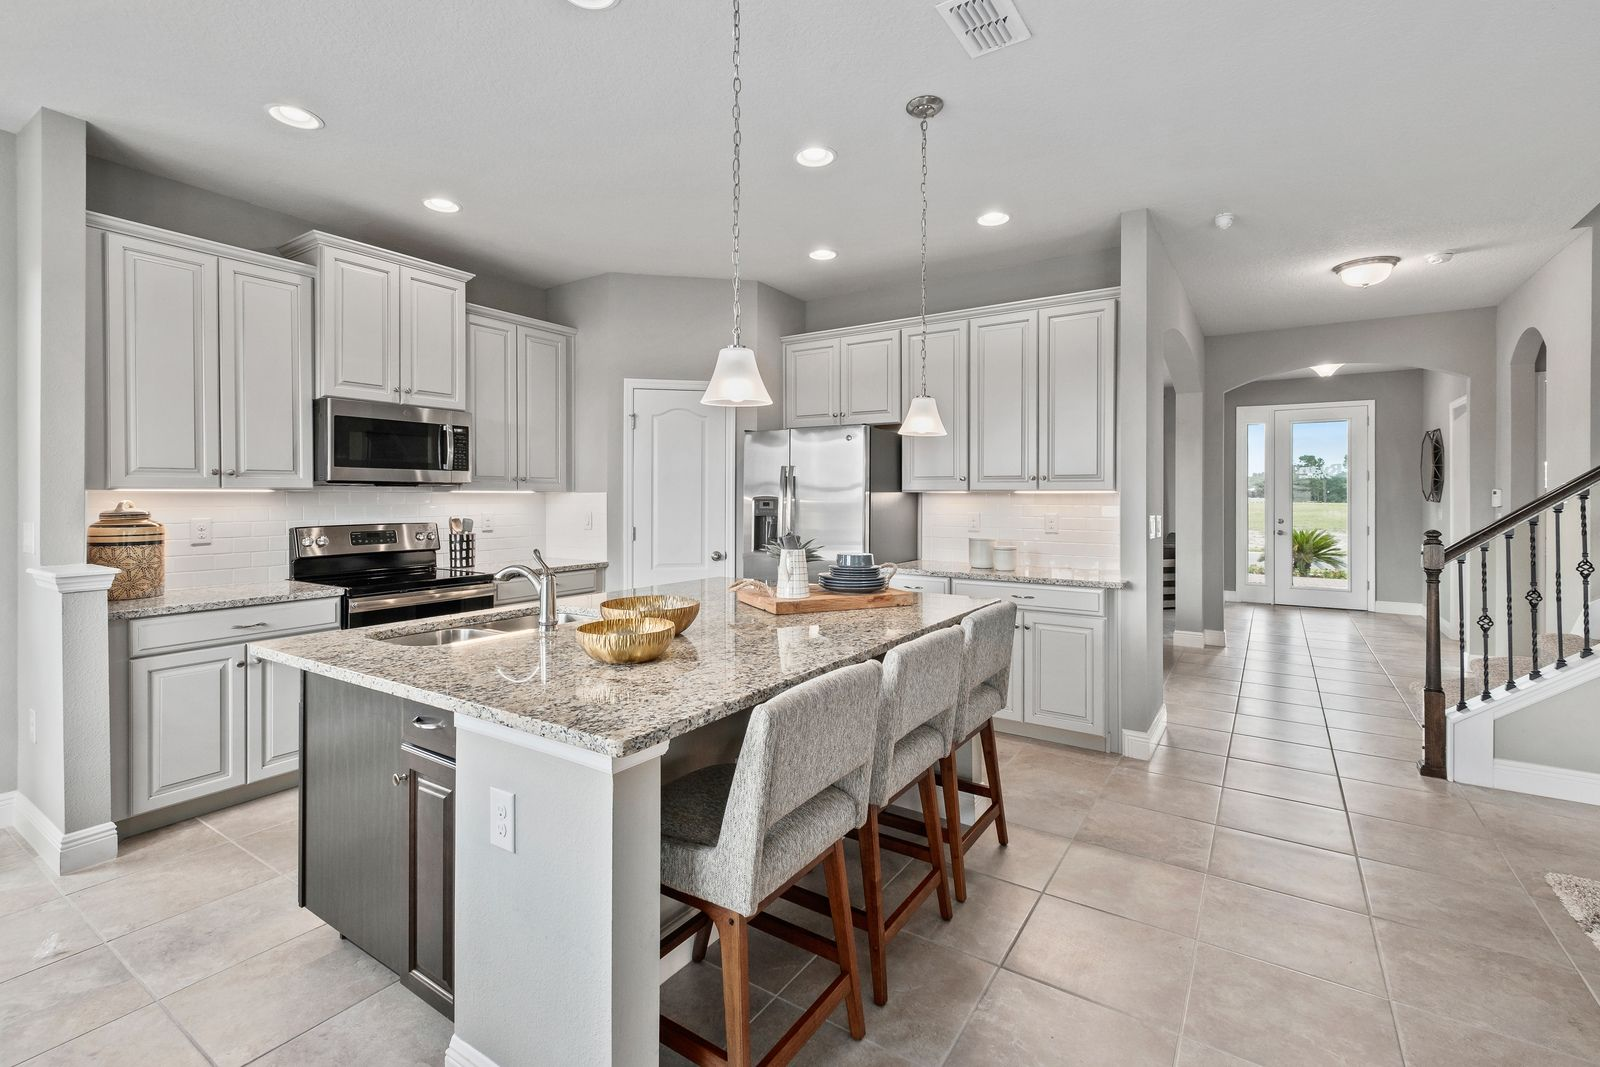 Kitchen-in-Estero Bay-at-Forest Lake Estates-in-Ocoee